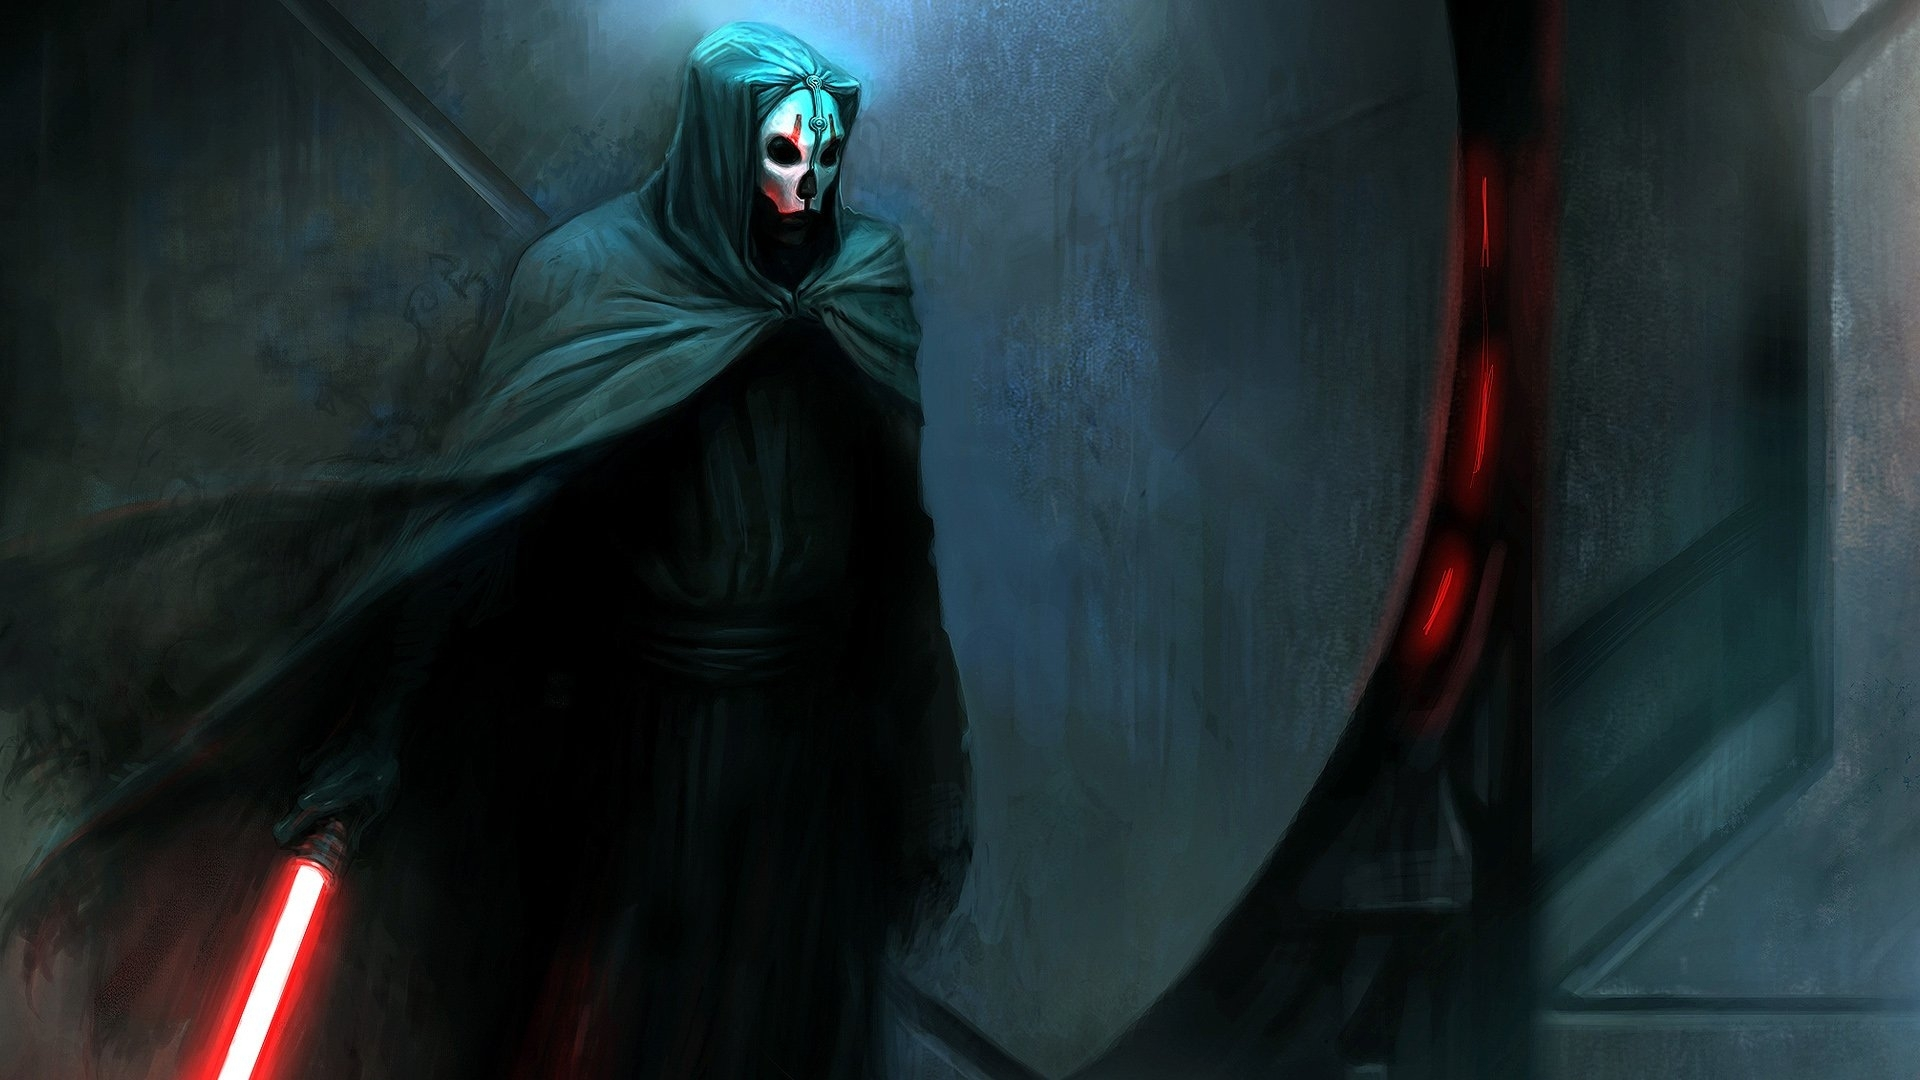 8 star wars: knights of the old republic ii hd wallpapers